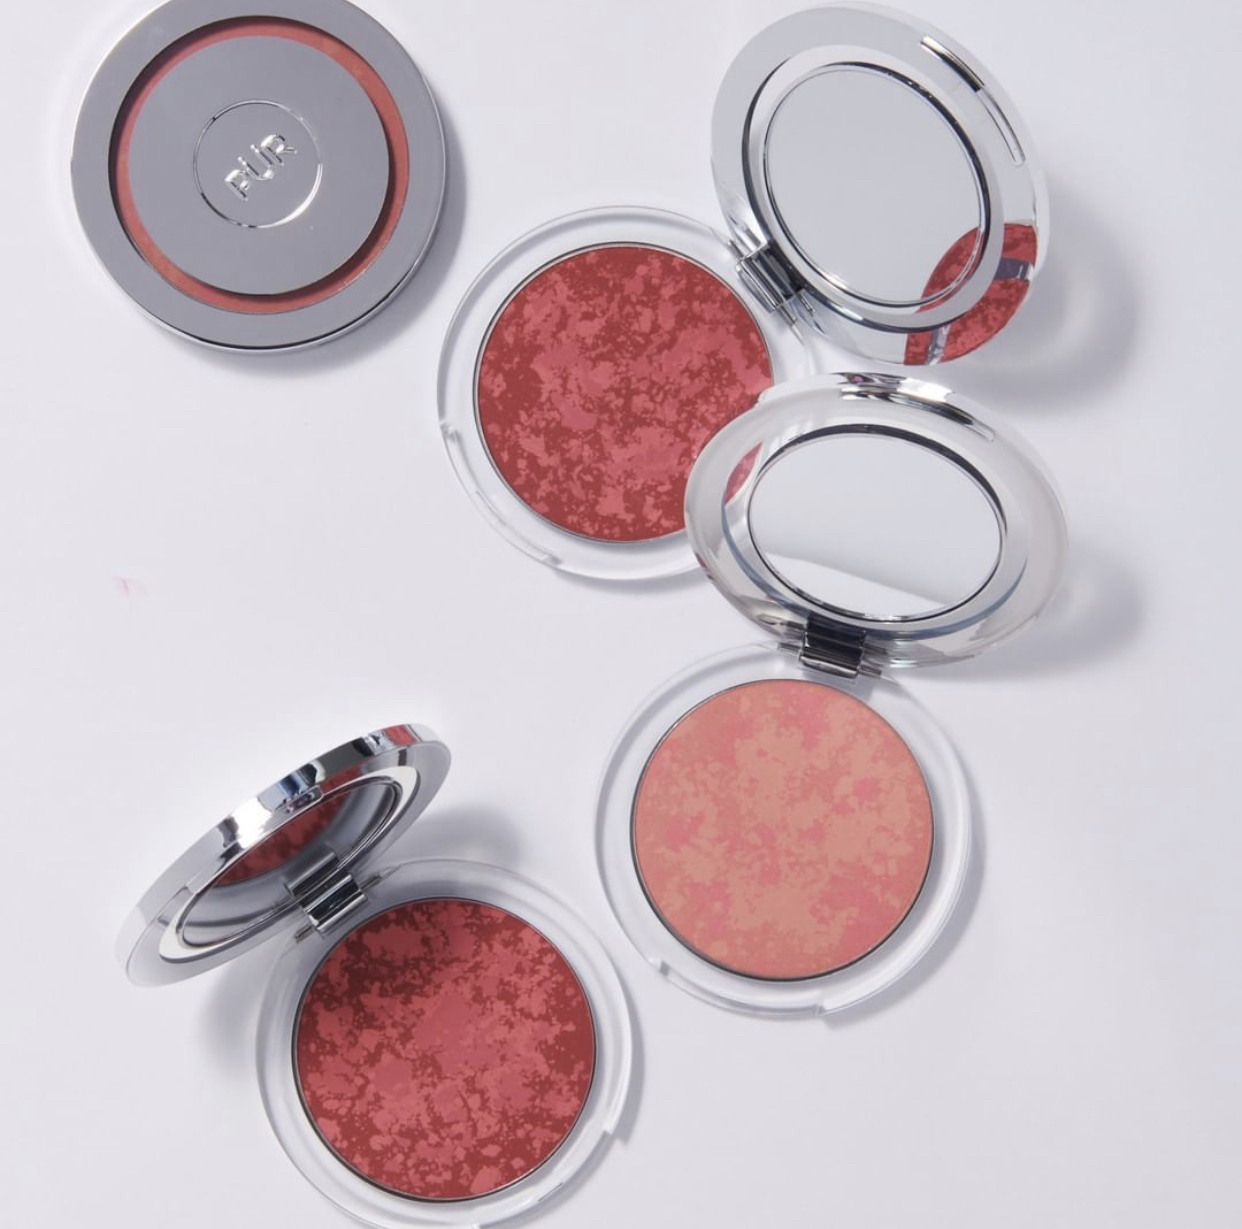 PUR Cosmetics Blushing Act Skin Perfecting Powders